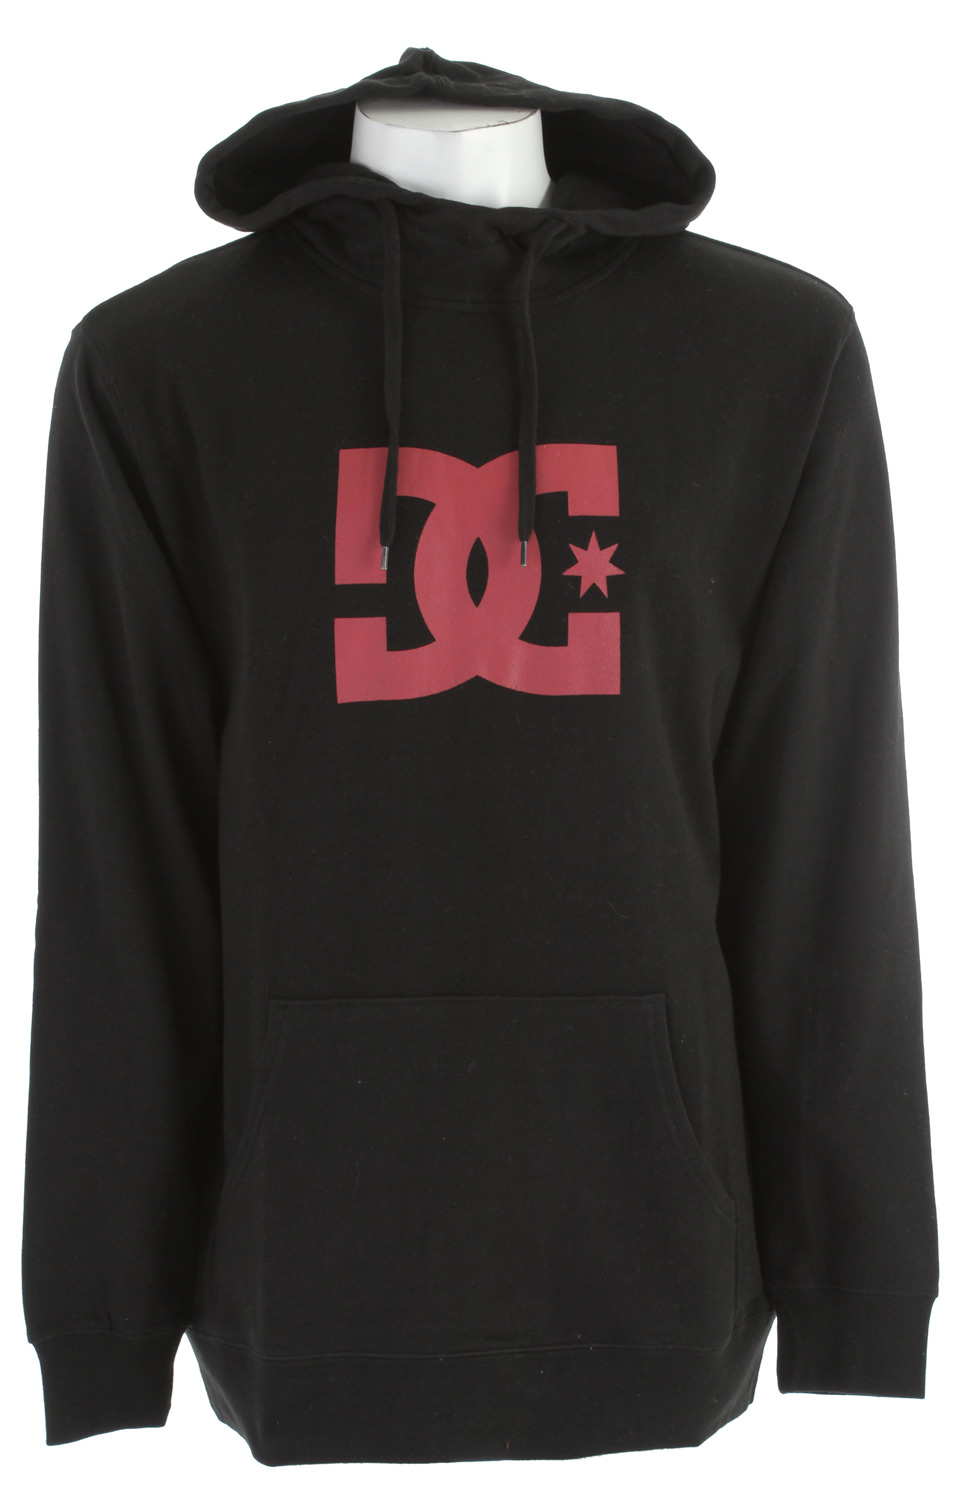 Skateboard Key Features of the DC Snow Star Fullzip Hoodie: Long fit fleece with full zip hood 80% cotton/20% polyester - $34.95